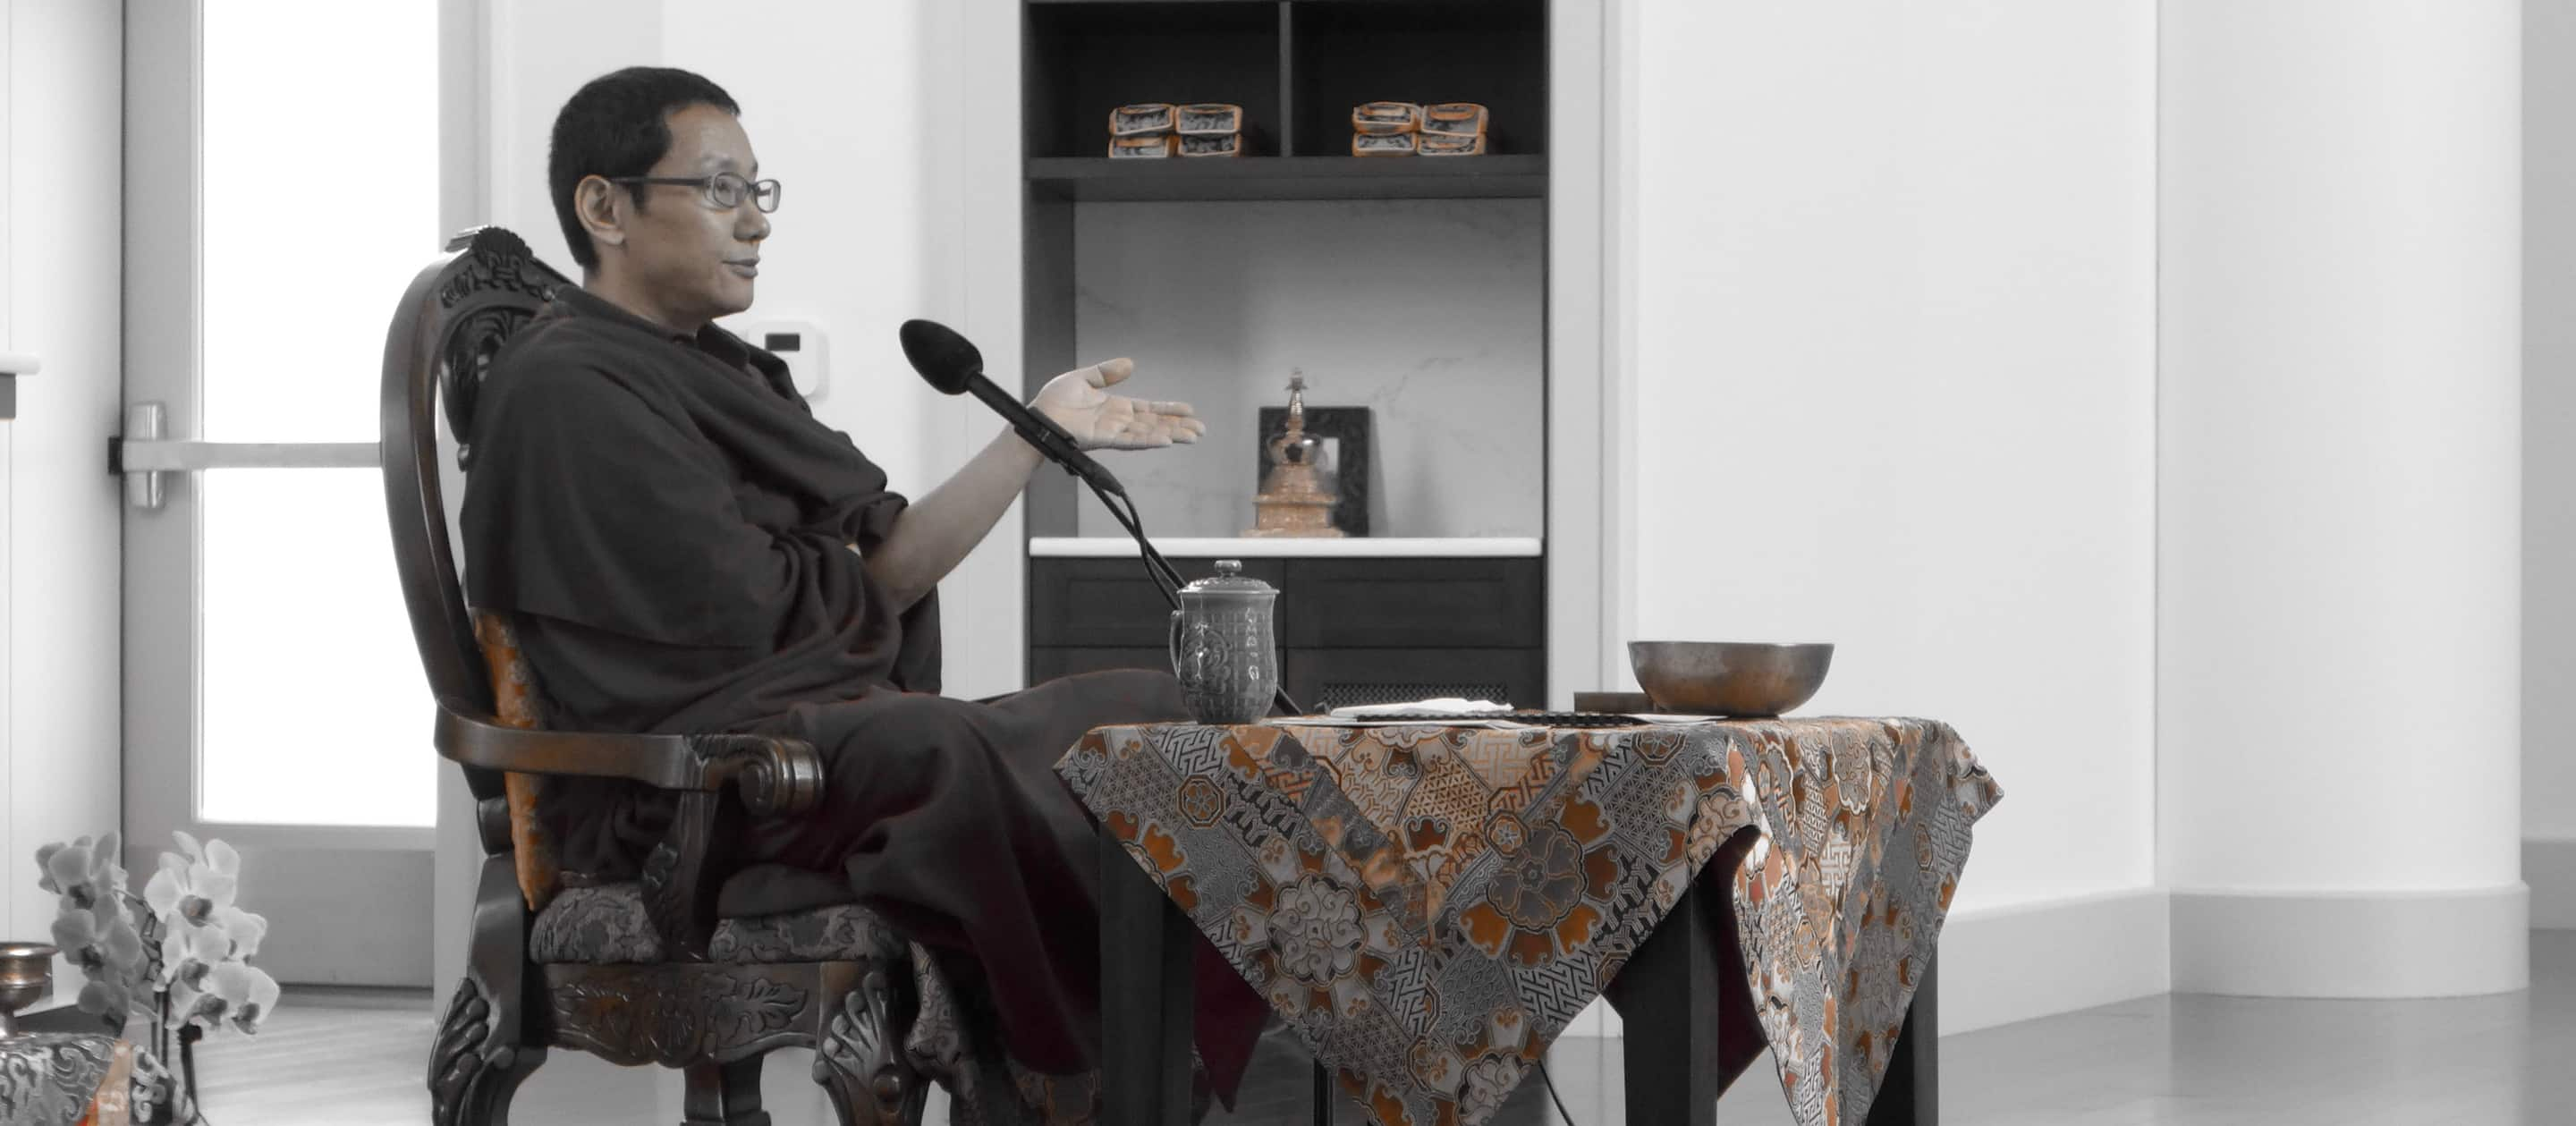 Buddhist lama at a table speaking through a microphone